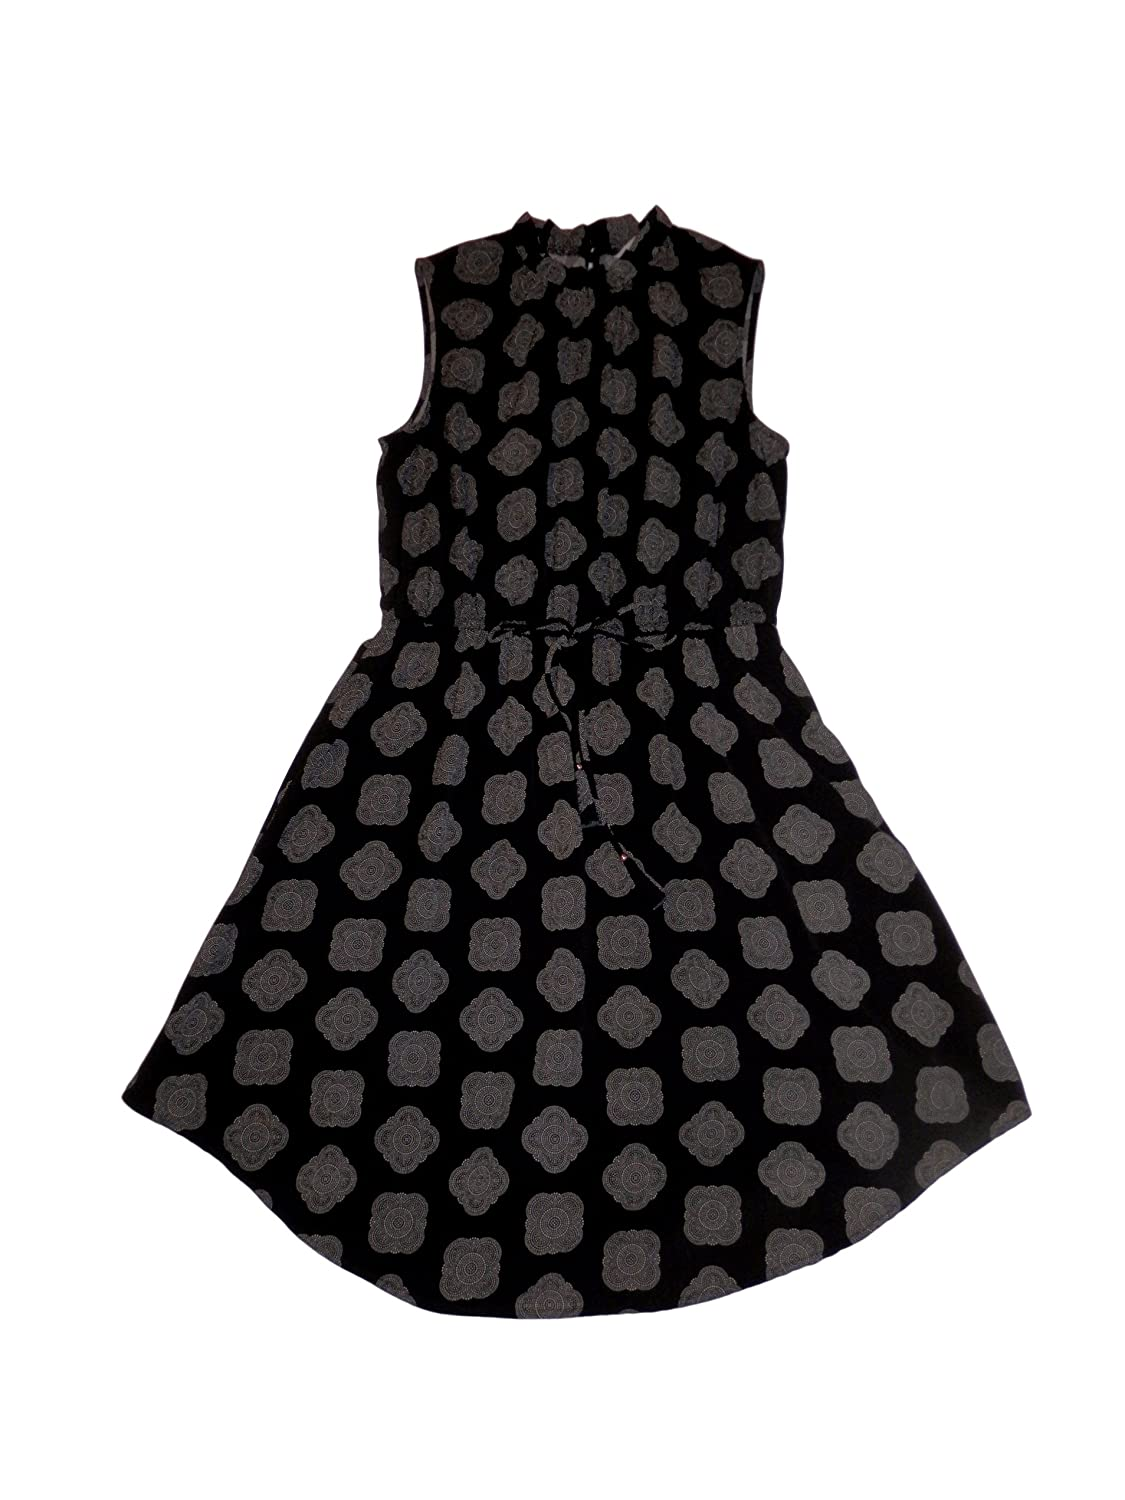 hm H & M Sleeveless Summer Dress (Size 4) at Amazon Womens Clothing store: